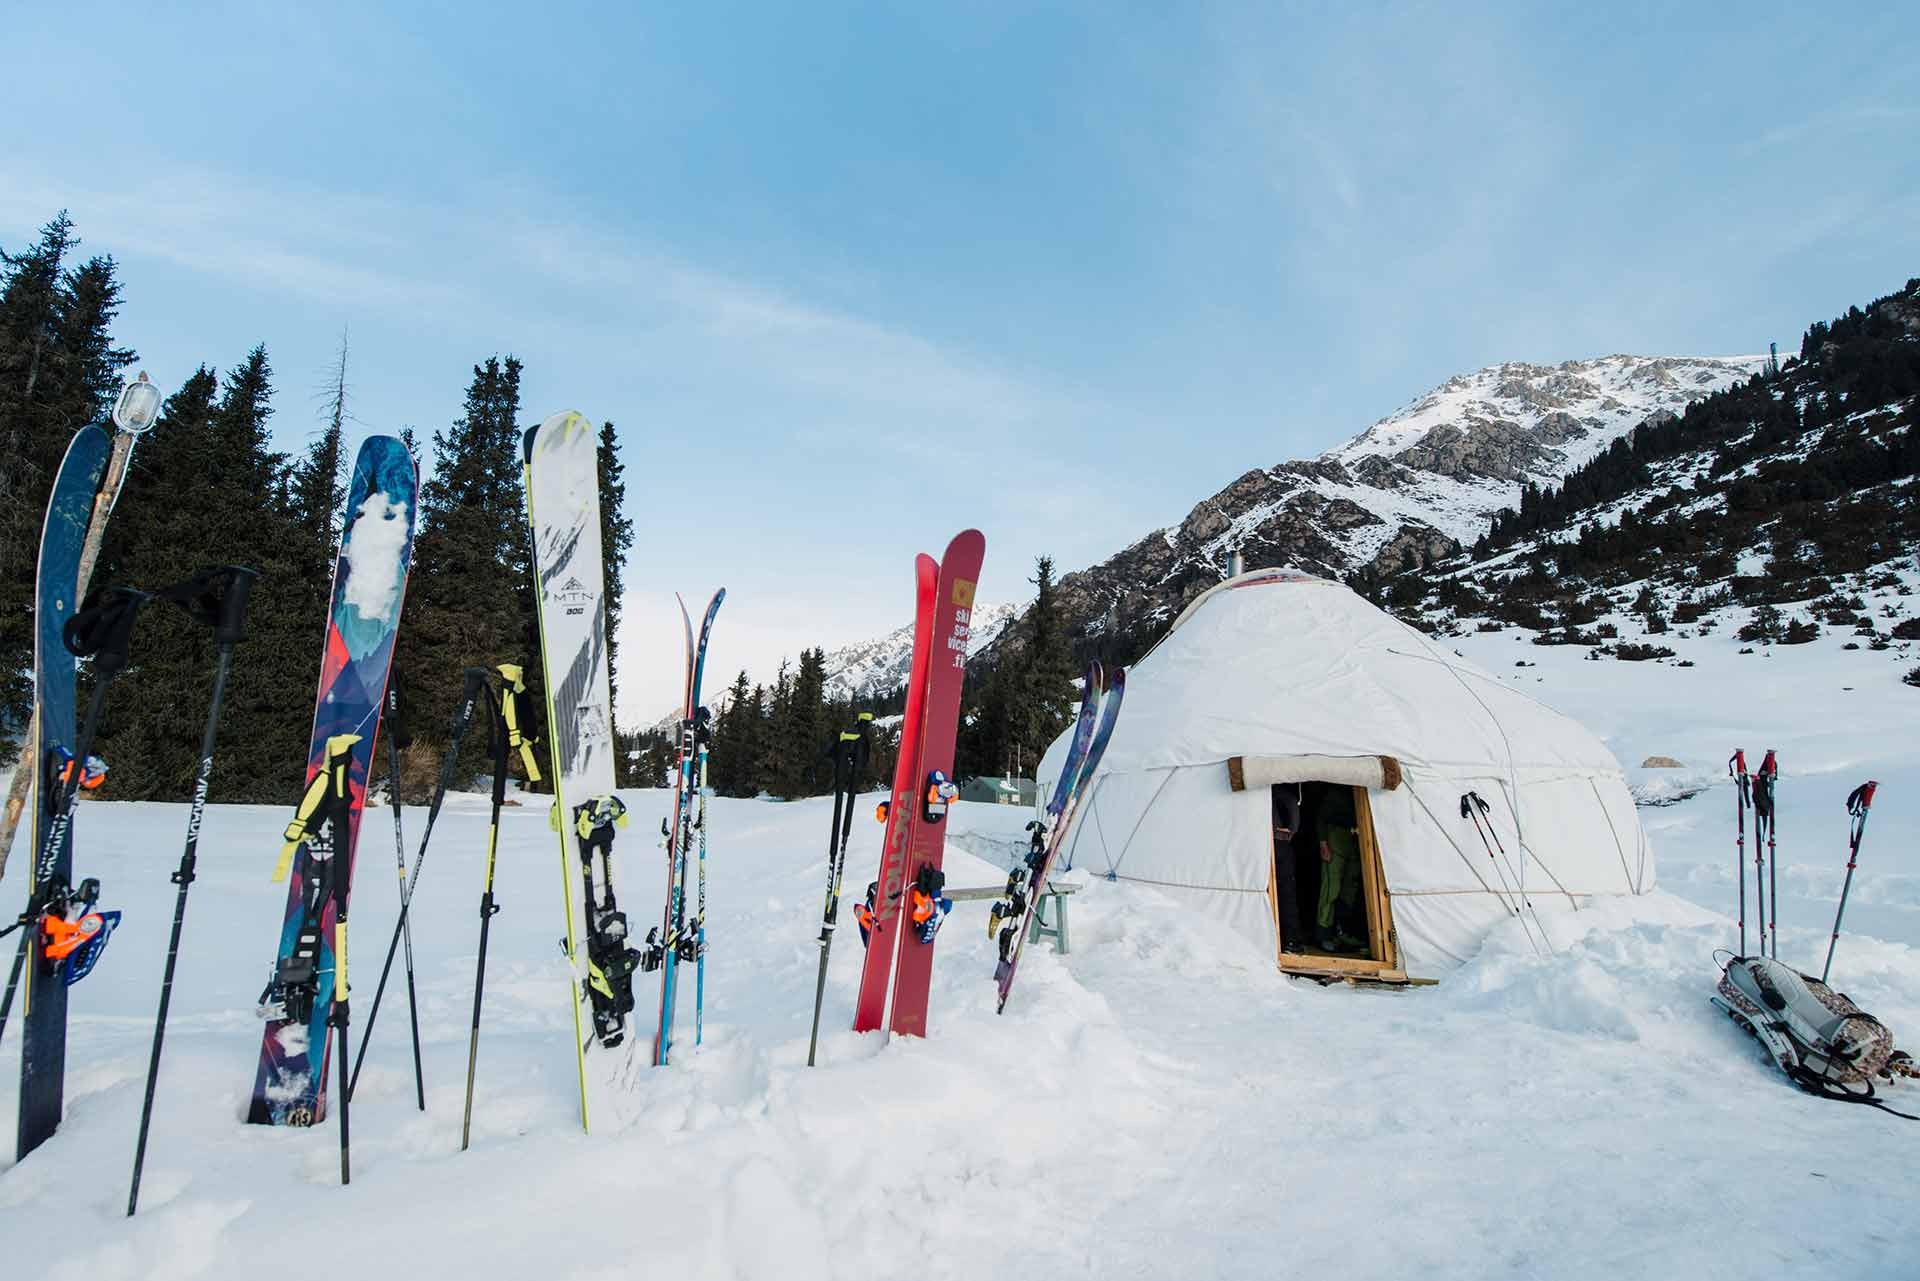 ski touring yurt staying in kyrgyzstan